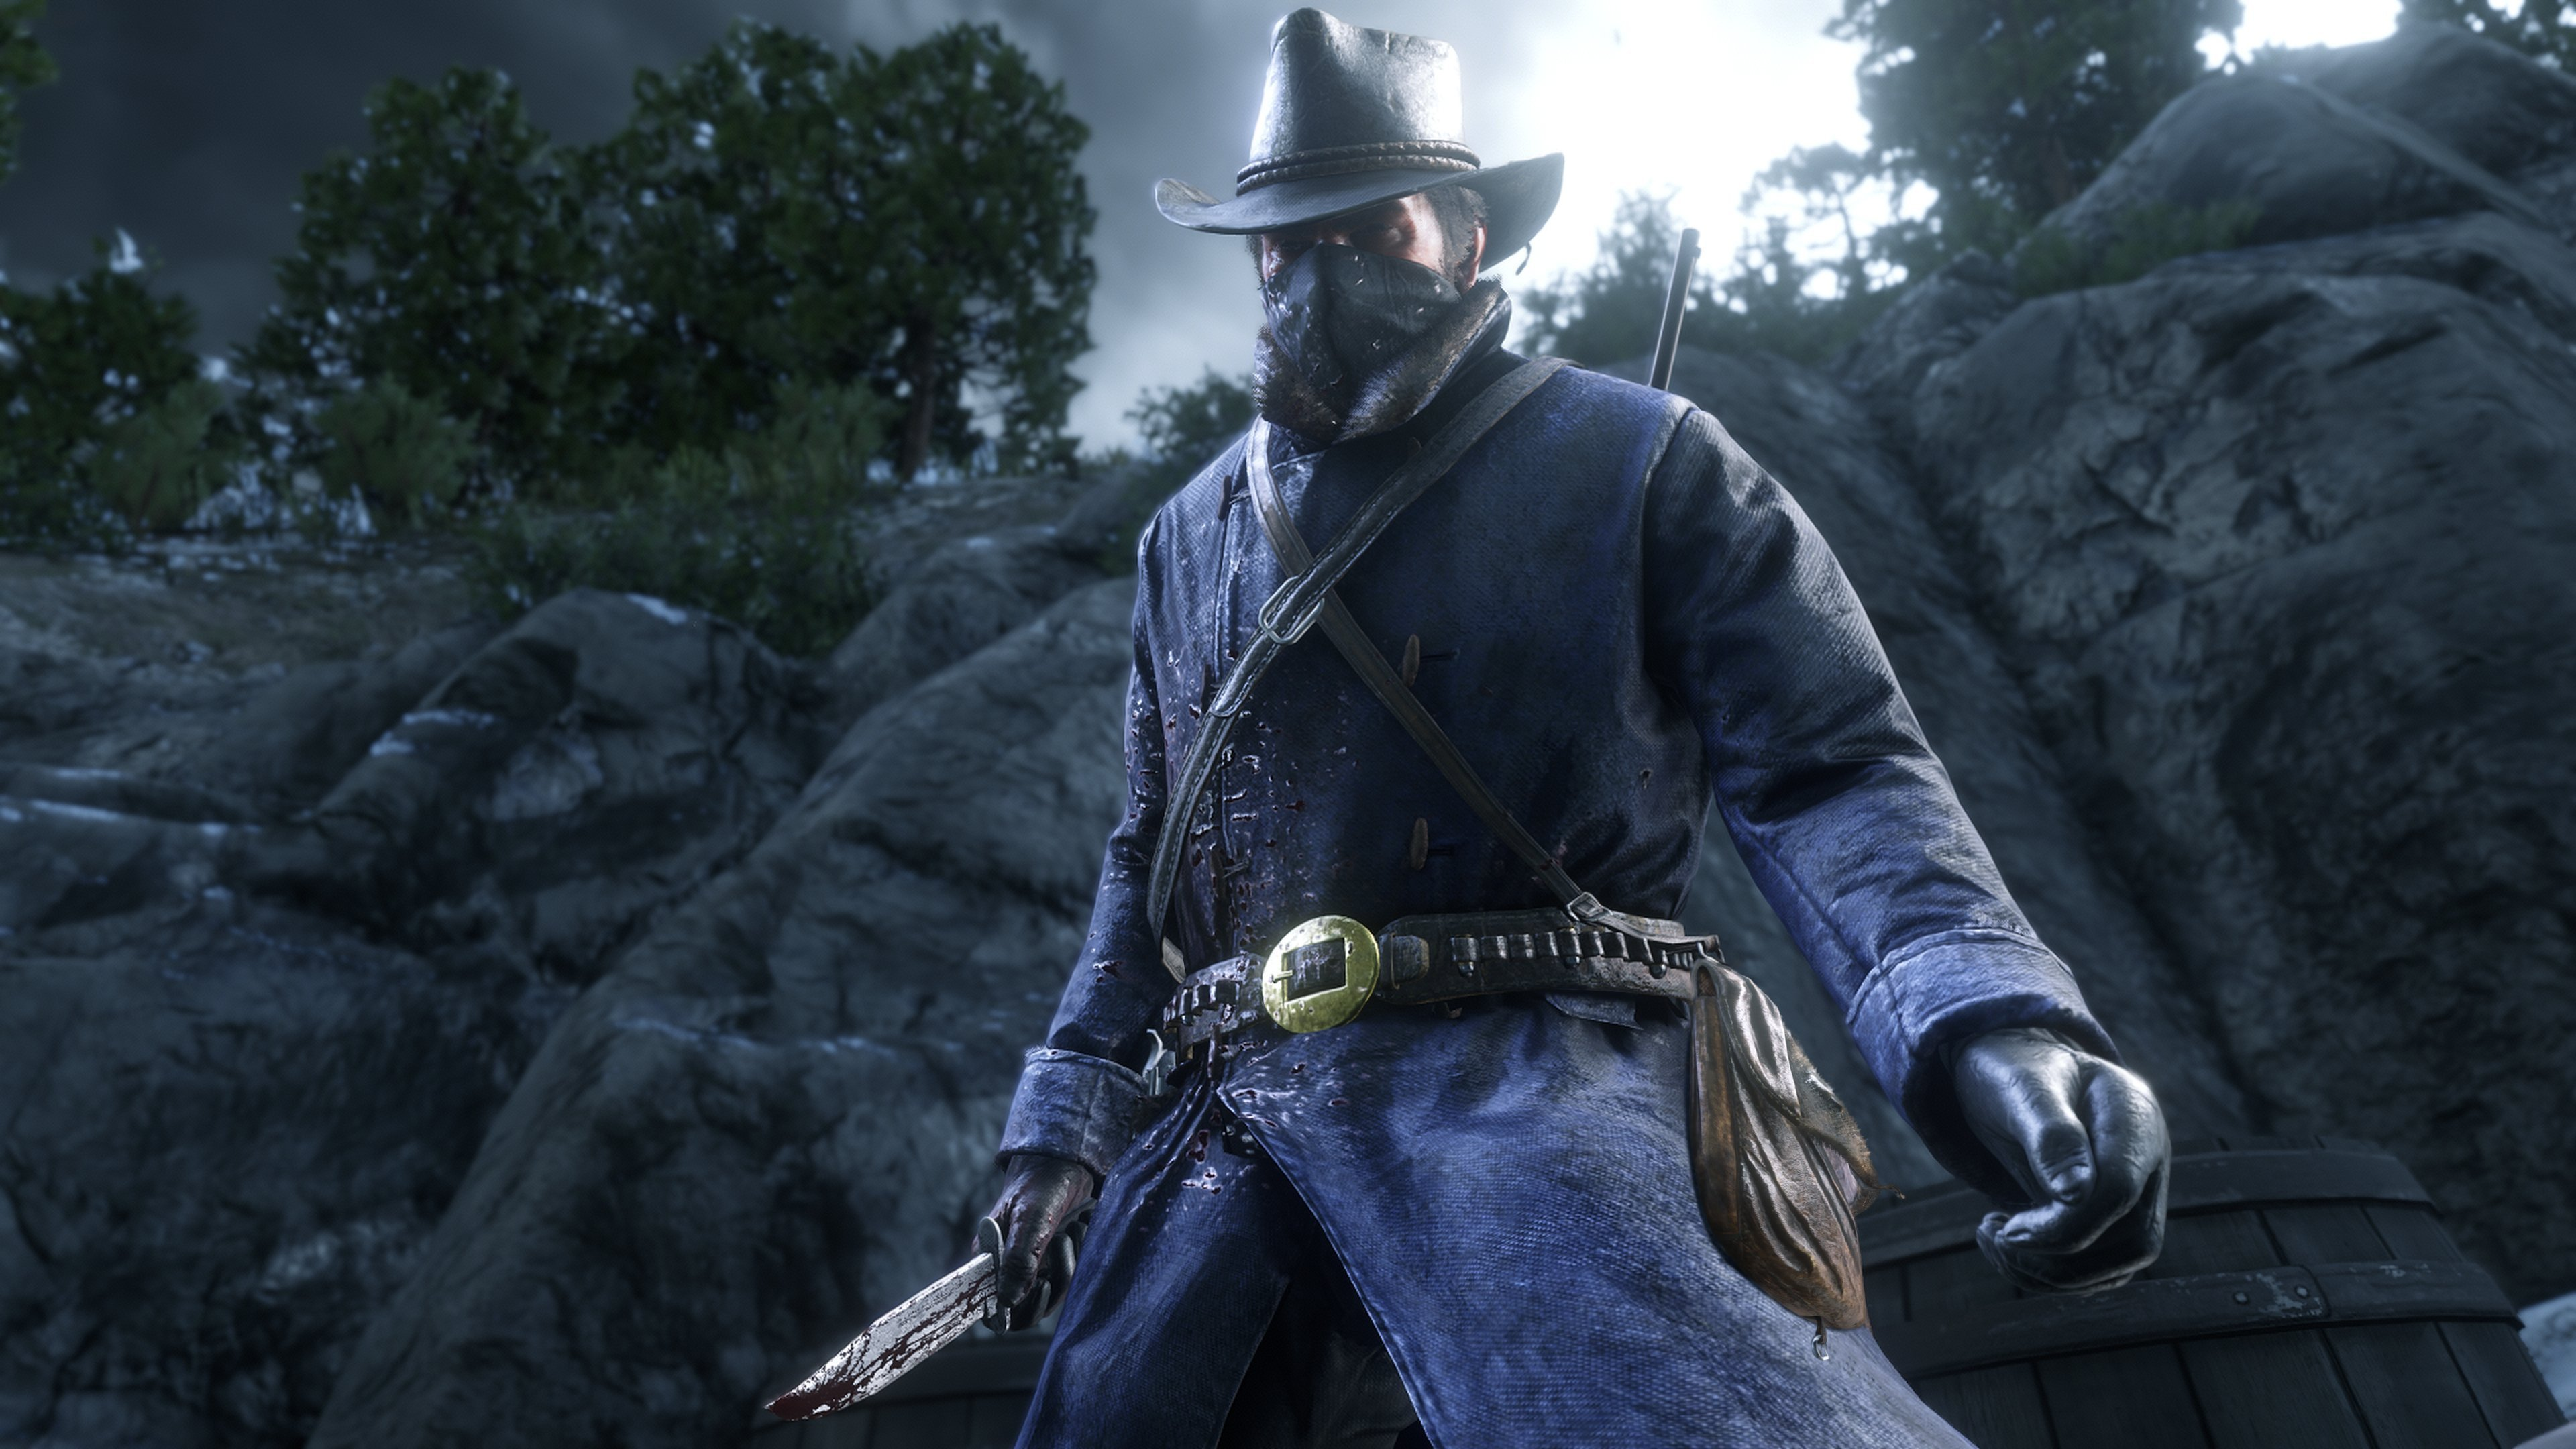 Red Dead Redemption 2 - How to Buy the Machete, Hatchet, and